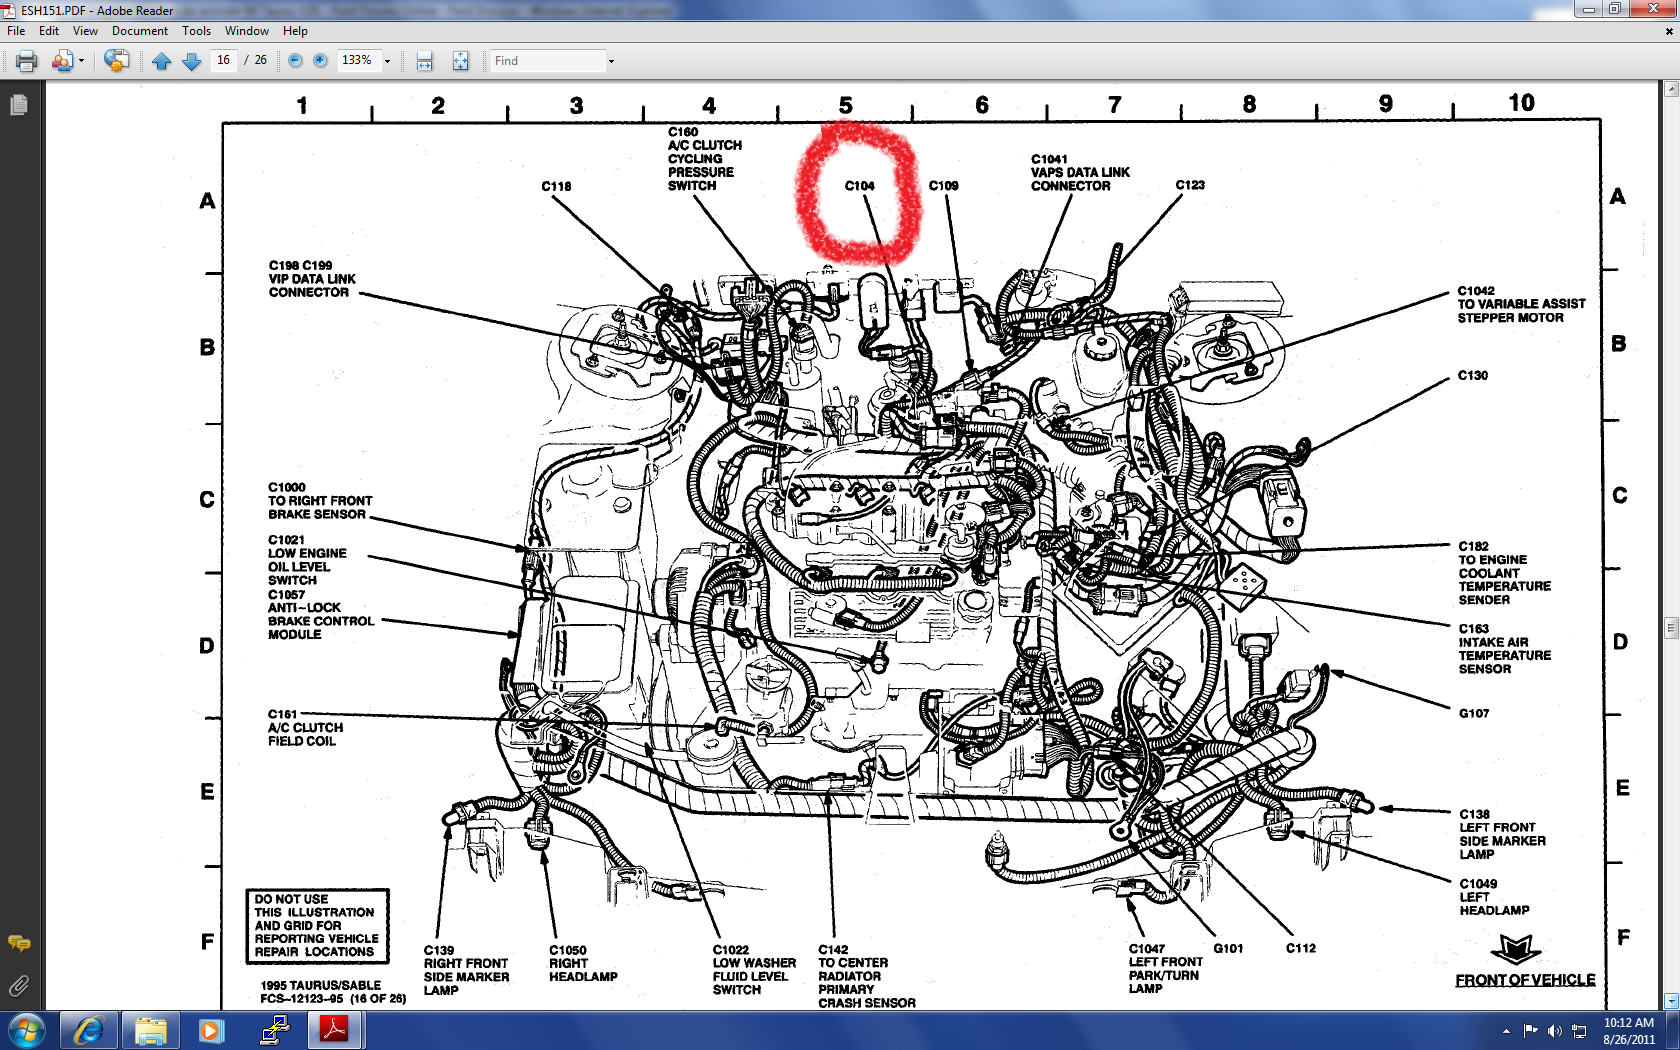 radiator cooling fan fails to auto activate 94 taurus 3 0l 1998 ford taurus wiring diagram at gsmx.co